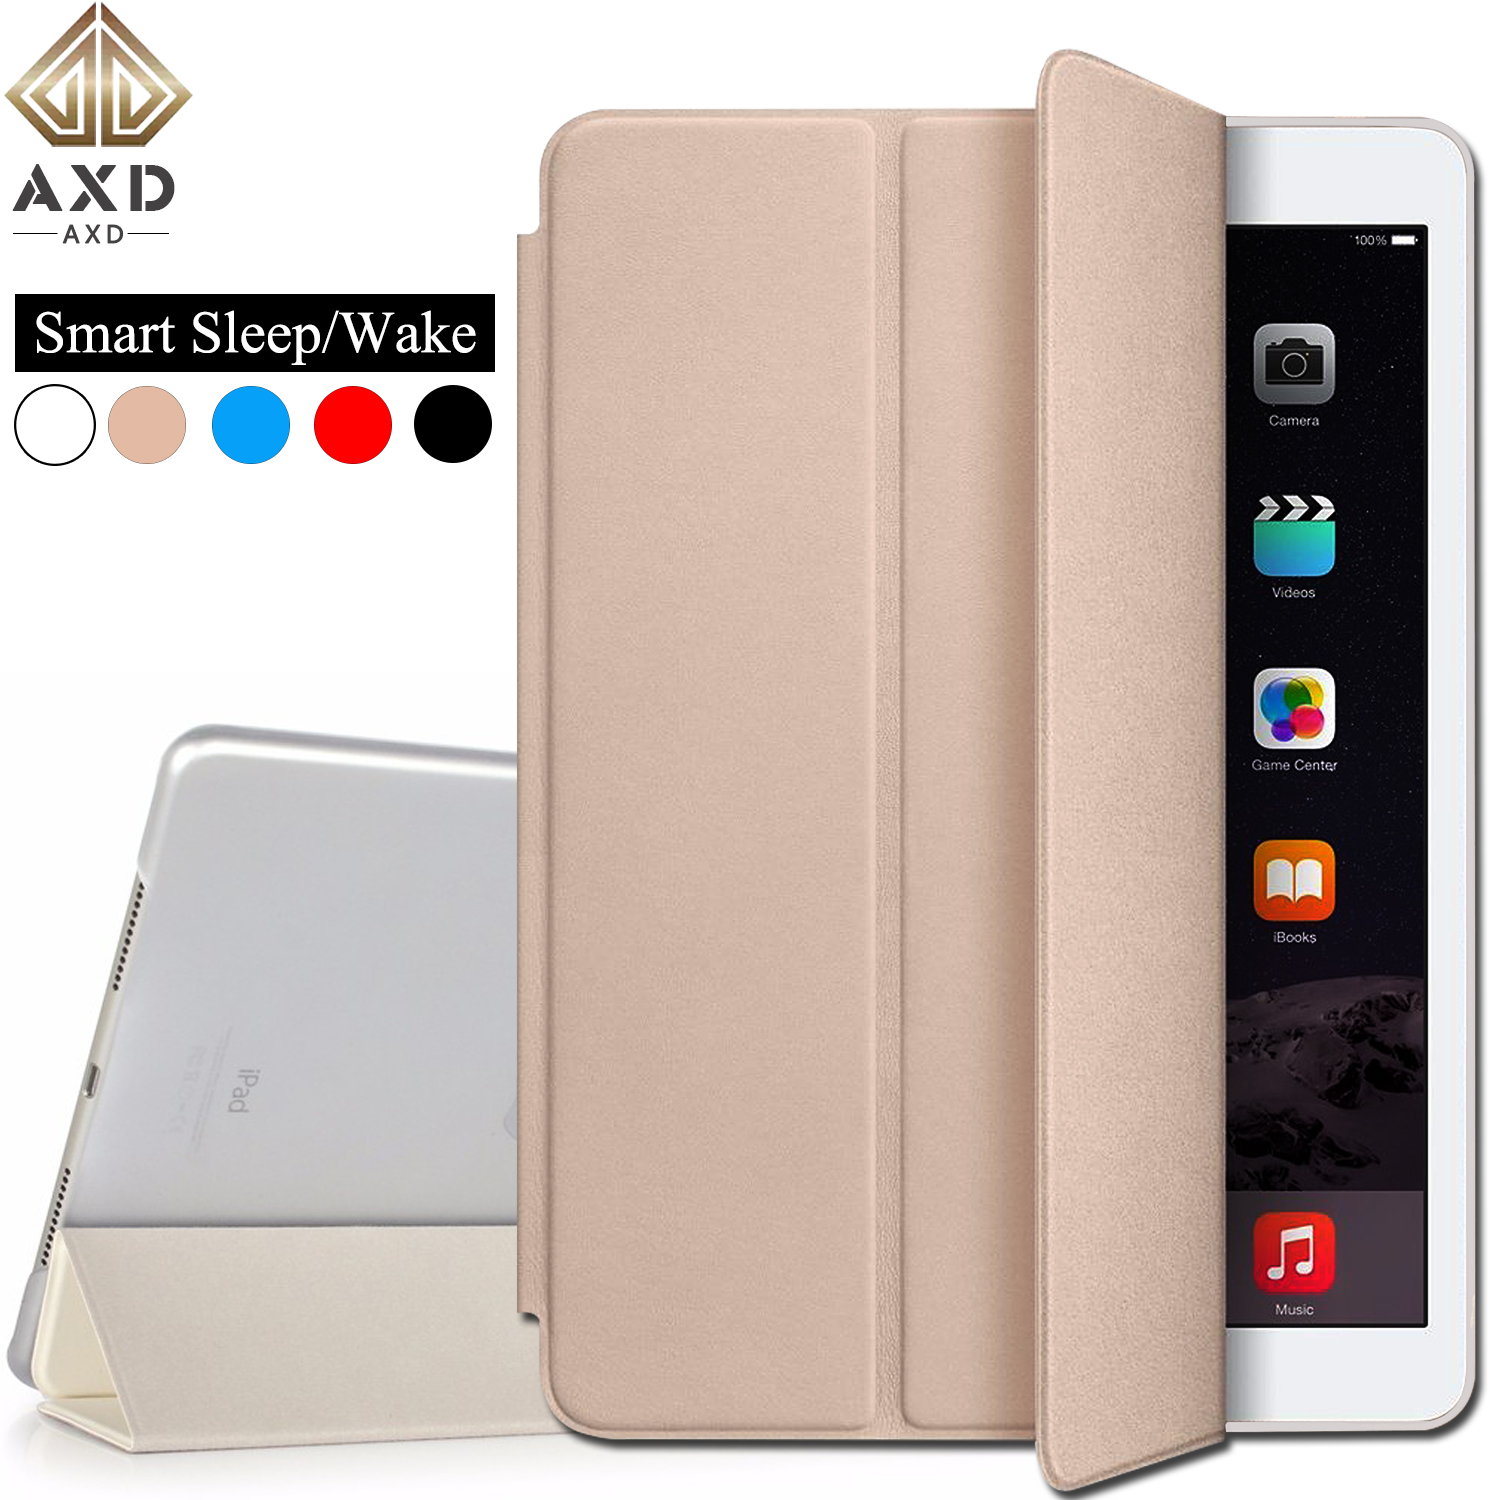 AXD Flip Leather Case For Huawei MediaPad M2 10 10.1-inch Fundas Smart Sleep Wake Cover Stand Capa Card For M2-A01W M2-A01L Wifi